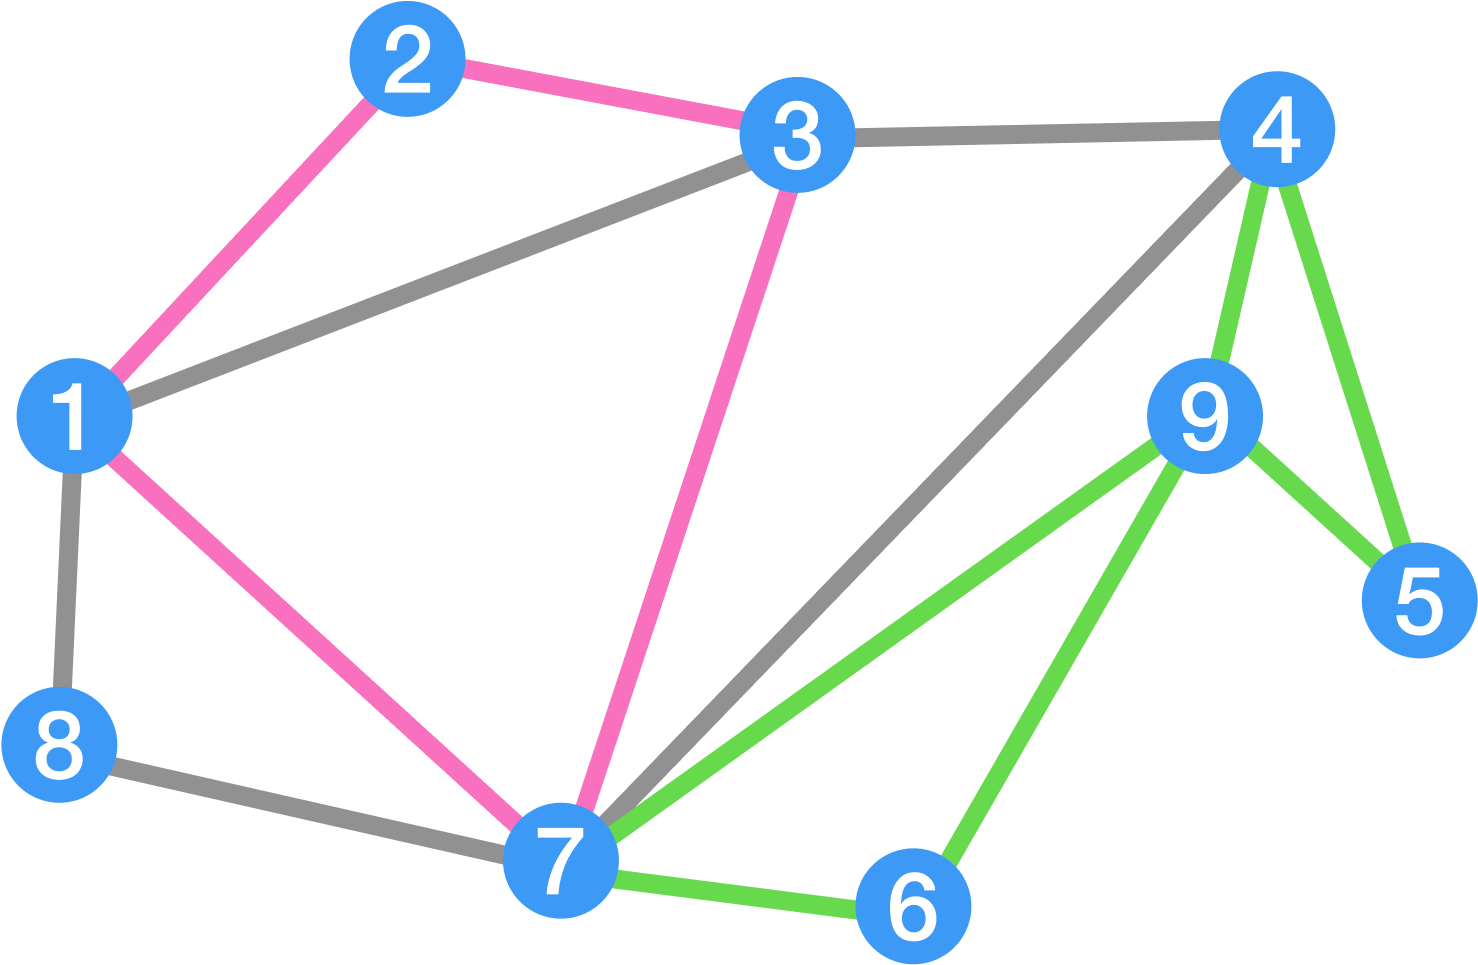 A graph in which all vertices have even degree.